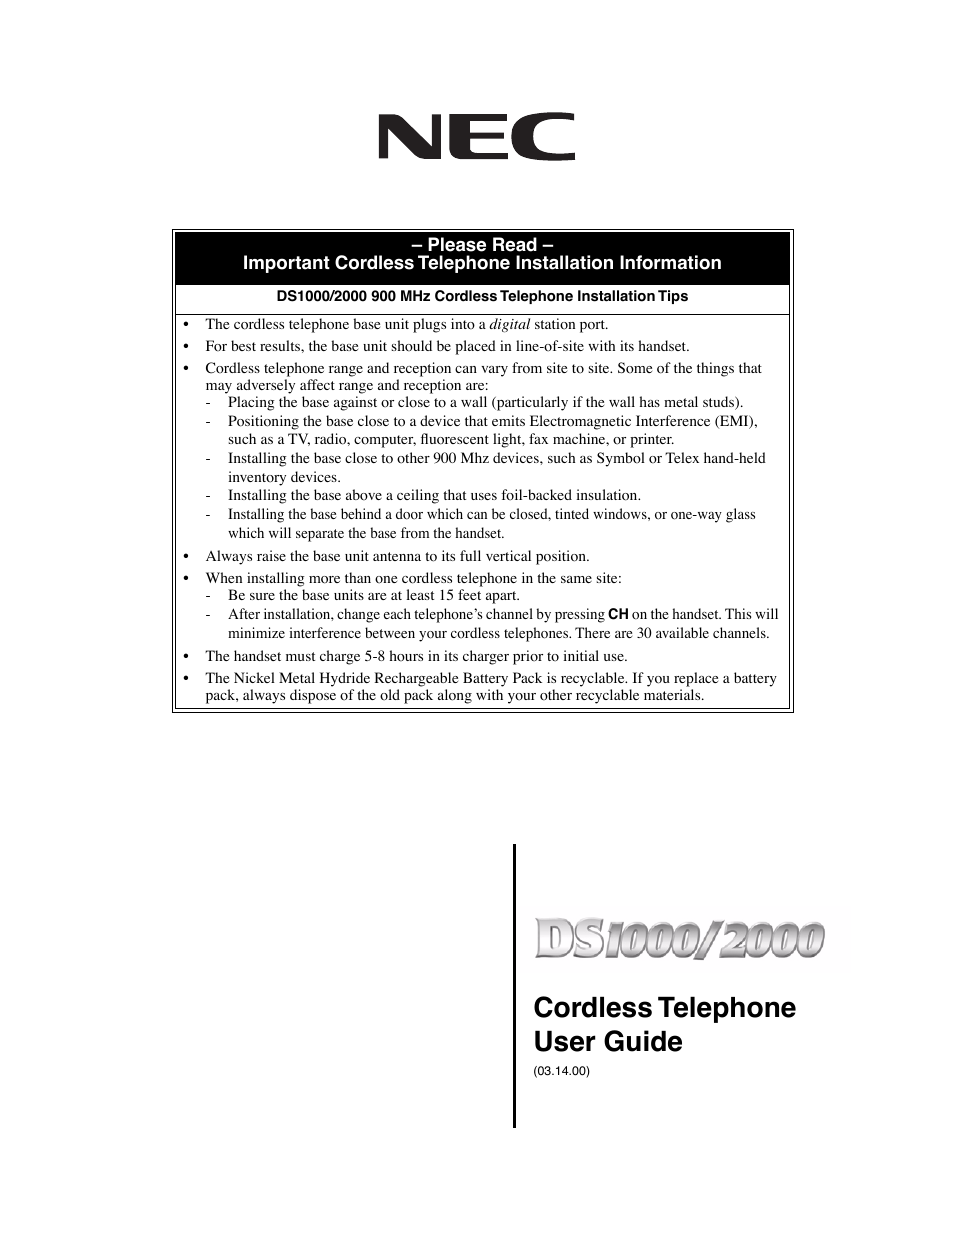 nec ds1000 2000 user manual 48 pages rh manualsdir com Quick Start Guide NEC DS1000 2000 Telephone Multi-Button